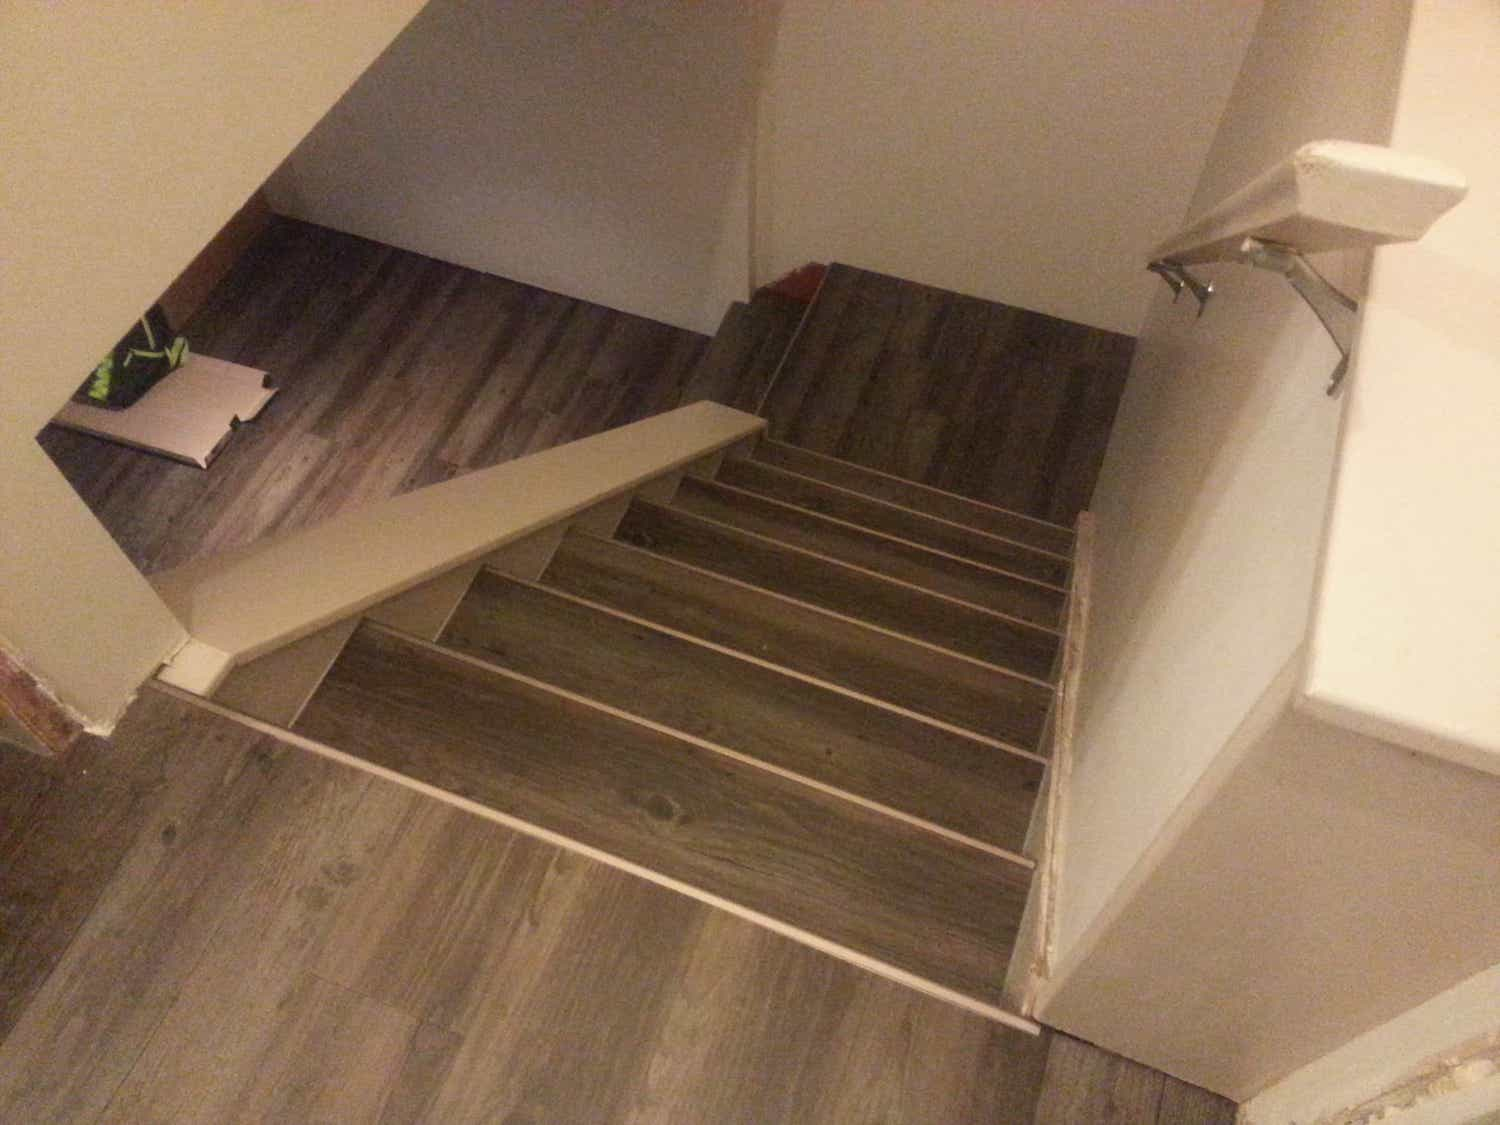 The Best Laminate Flooring on Stairs